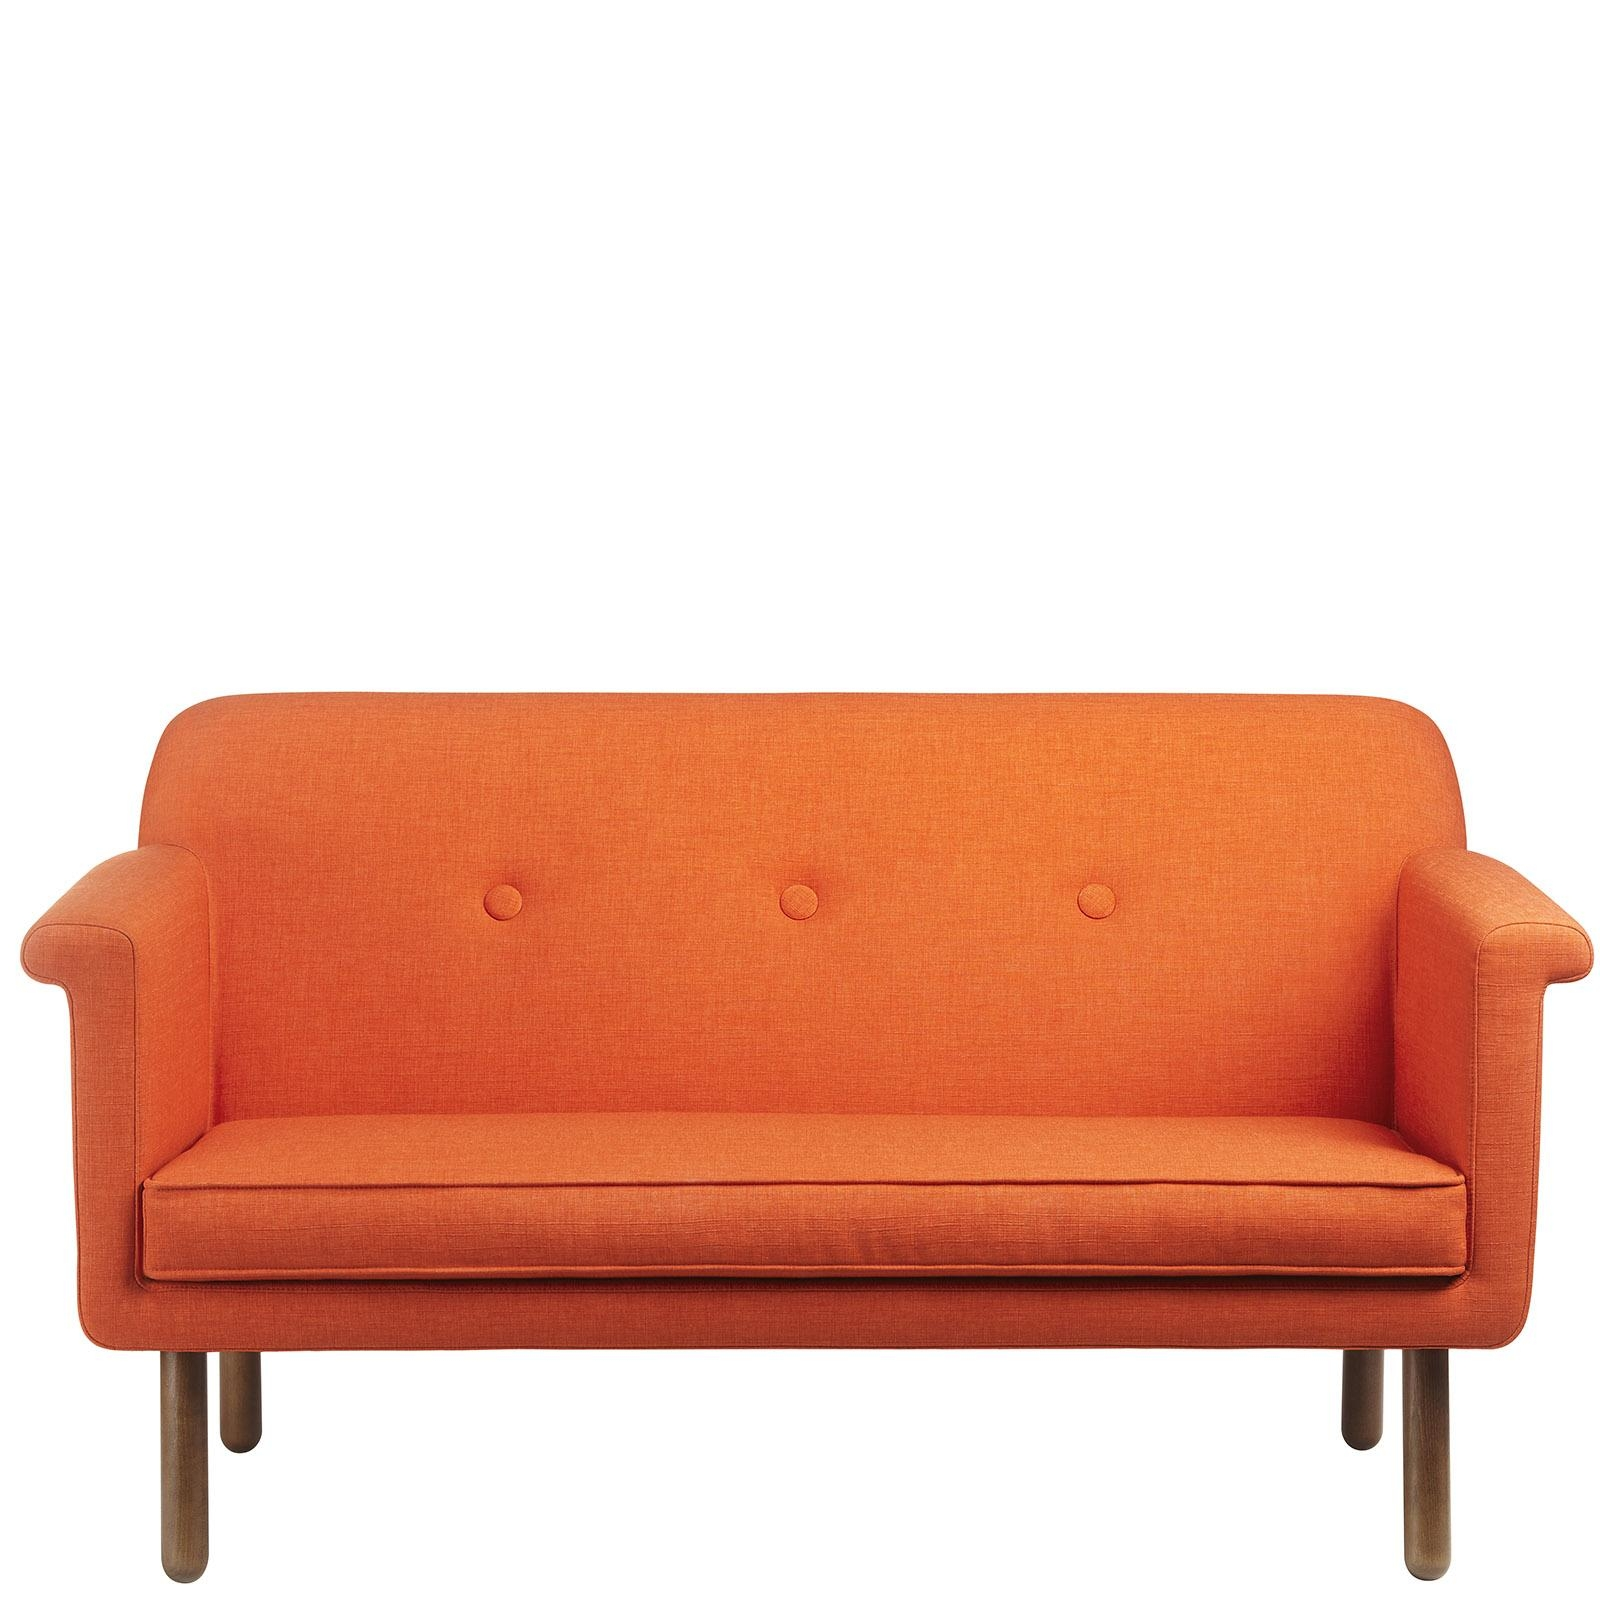 Sofa Orange 20 Best Orange Sofa Chairs Sofa Ideas